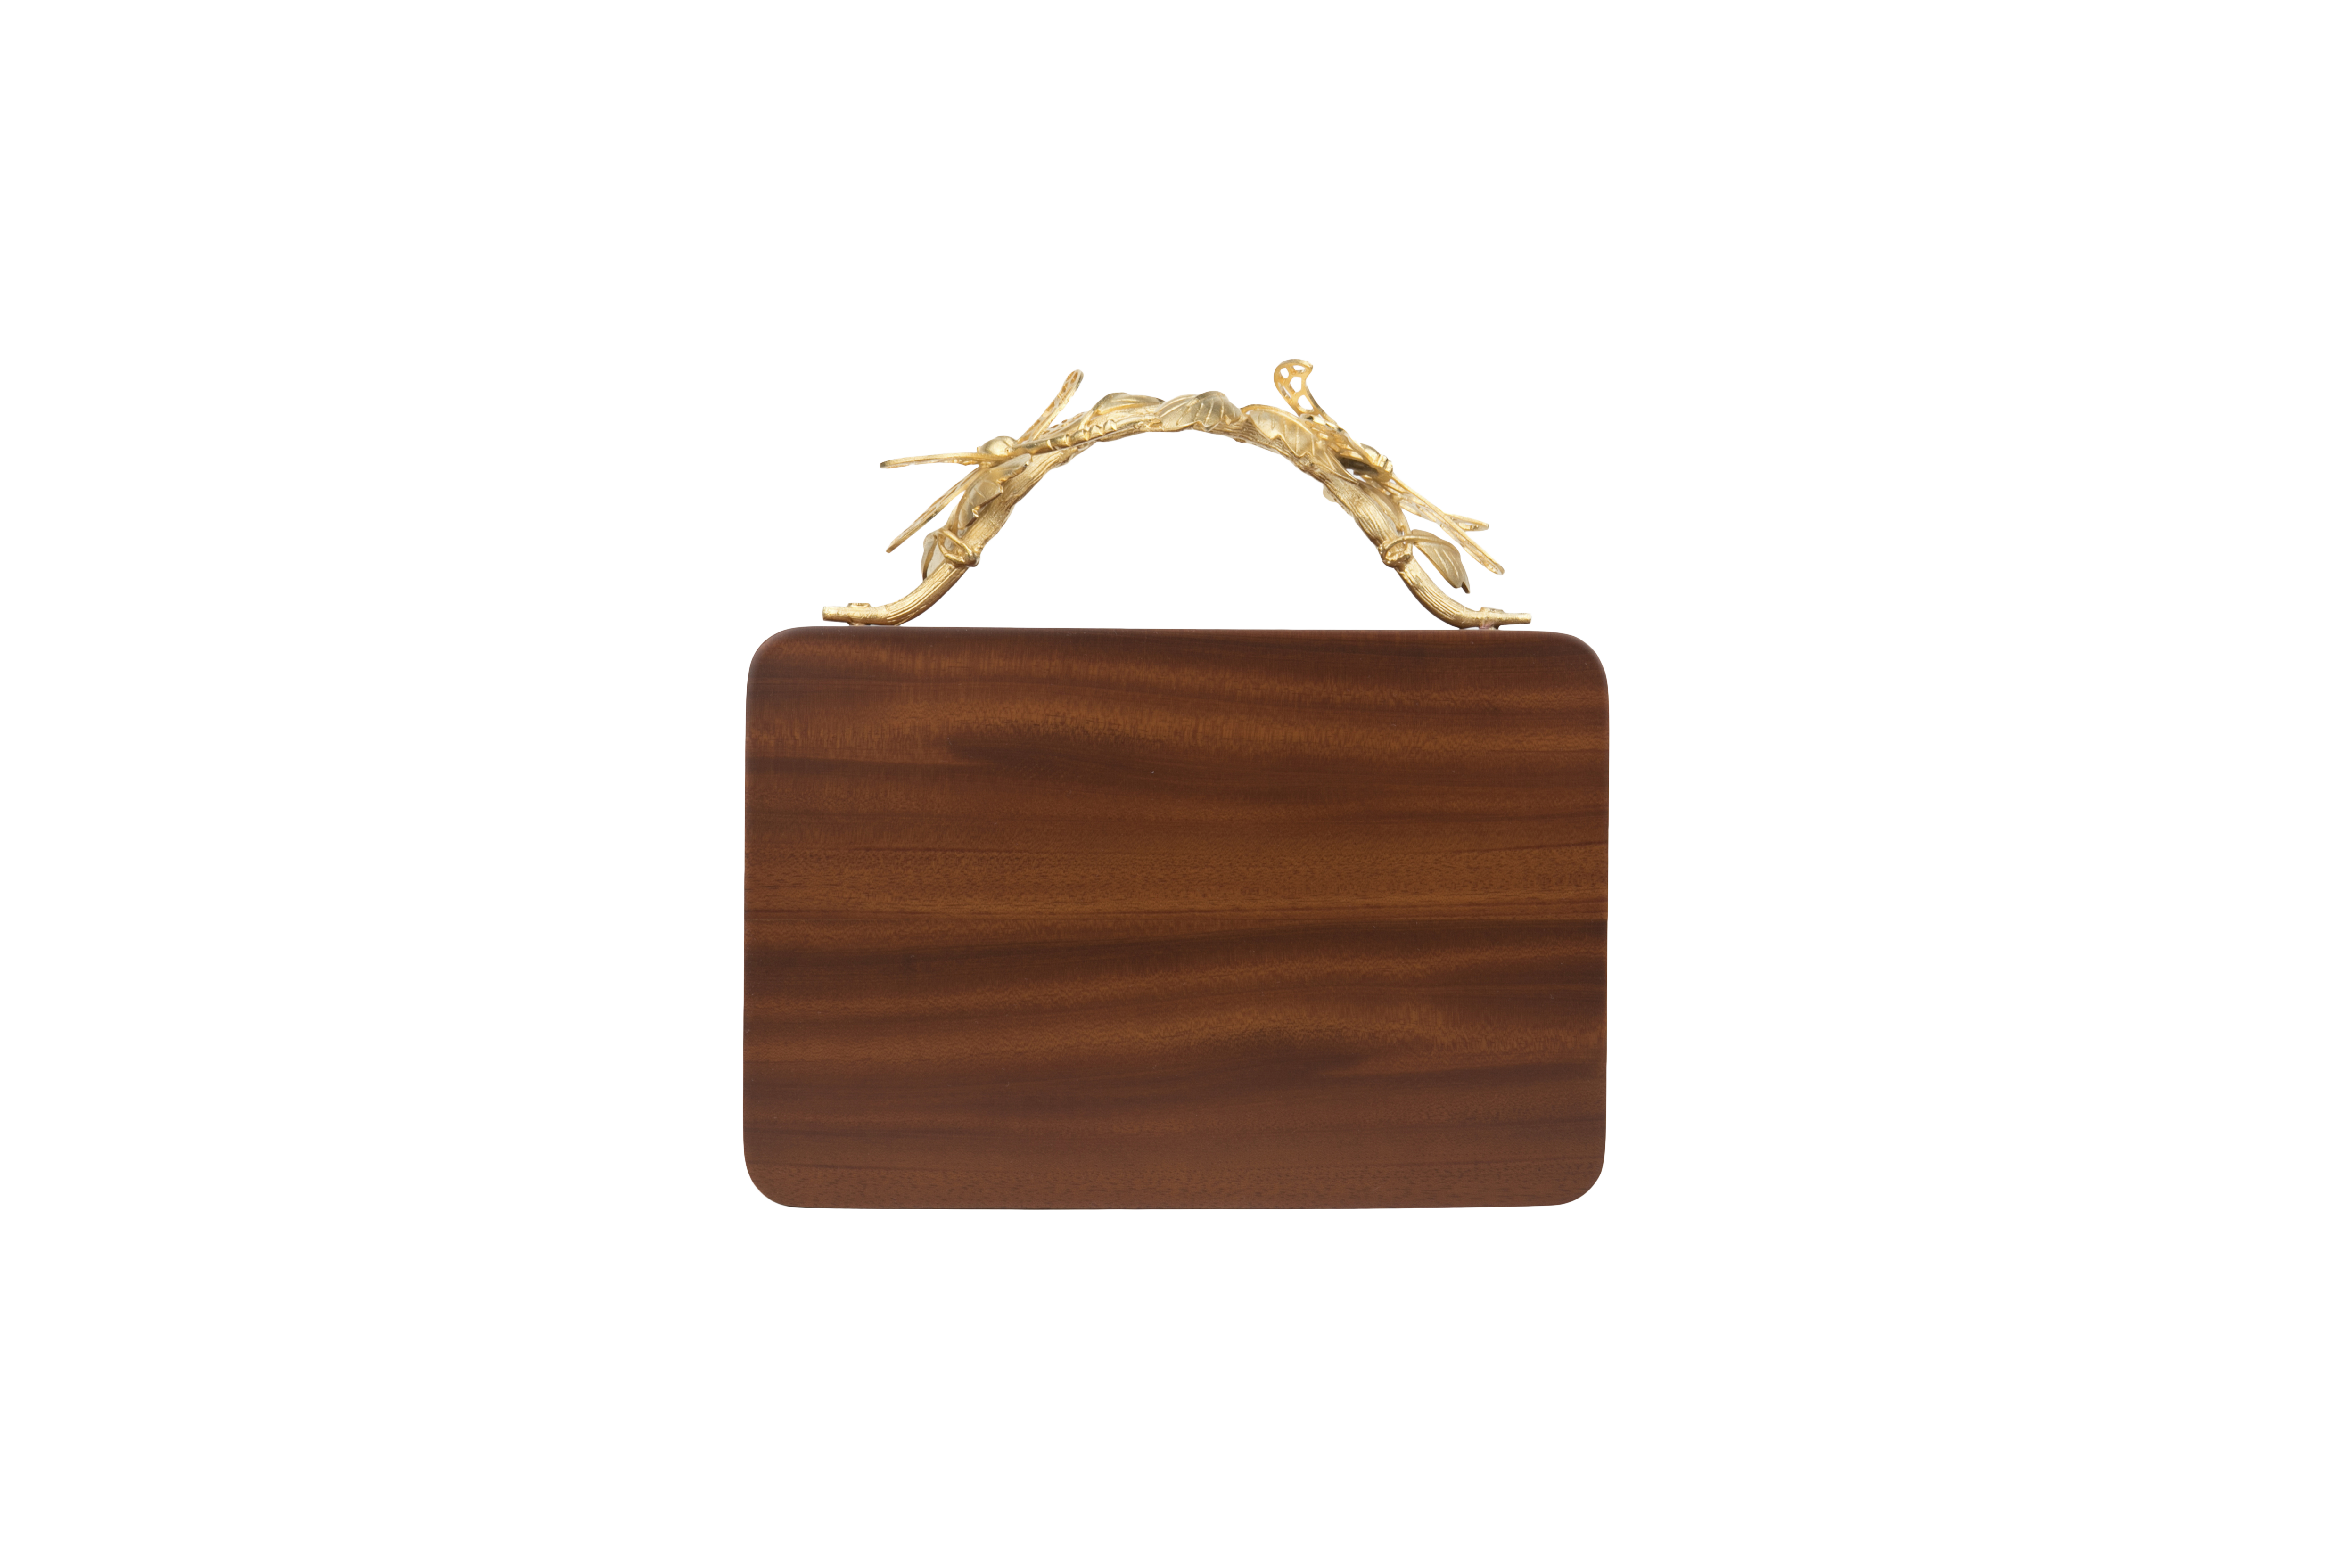 Triangle Wooden Grasshopper Clutch by Duet Luxury on curated-crowd.com